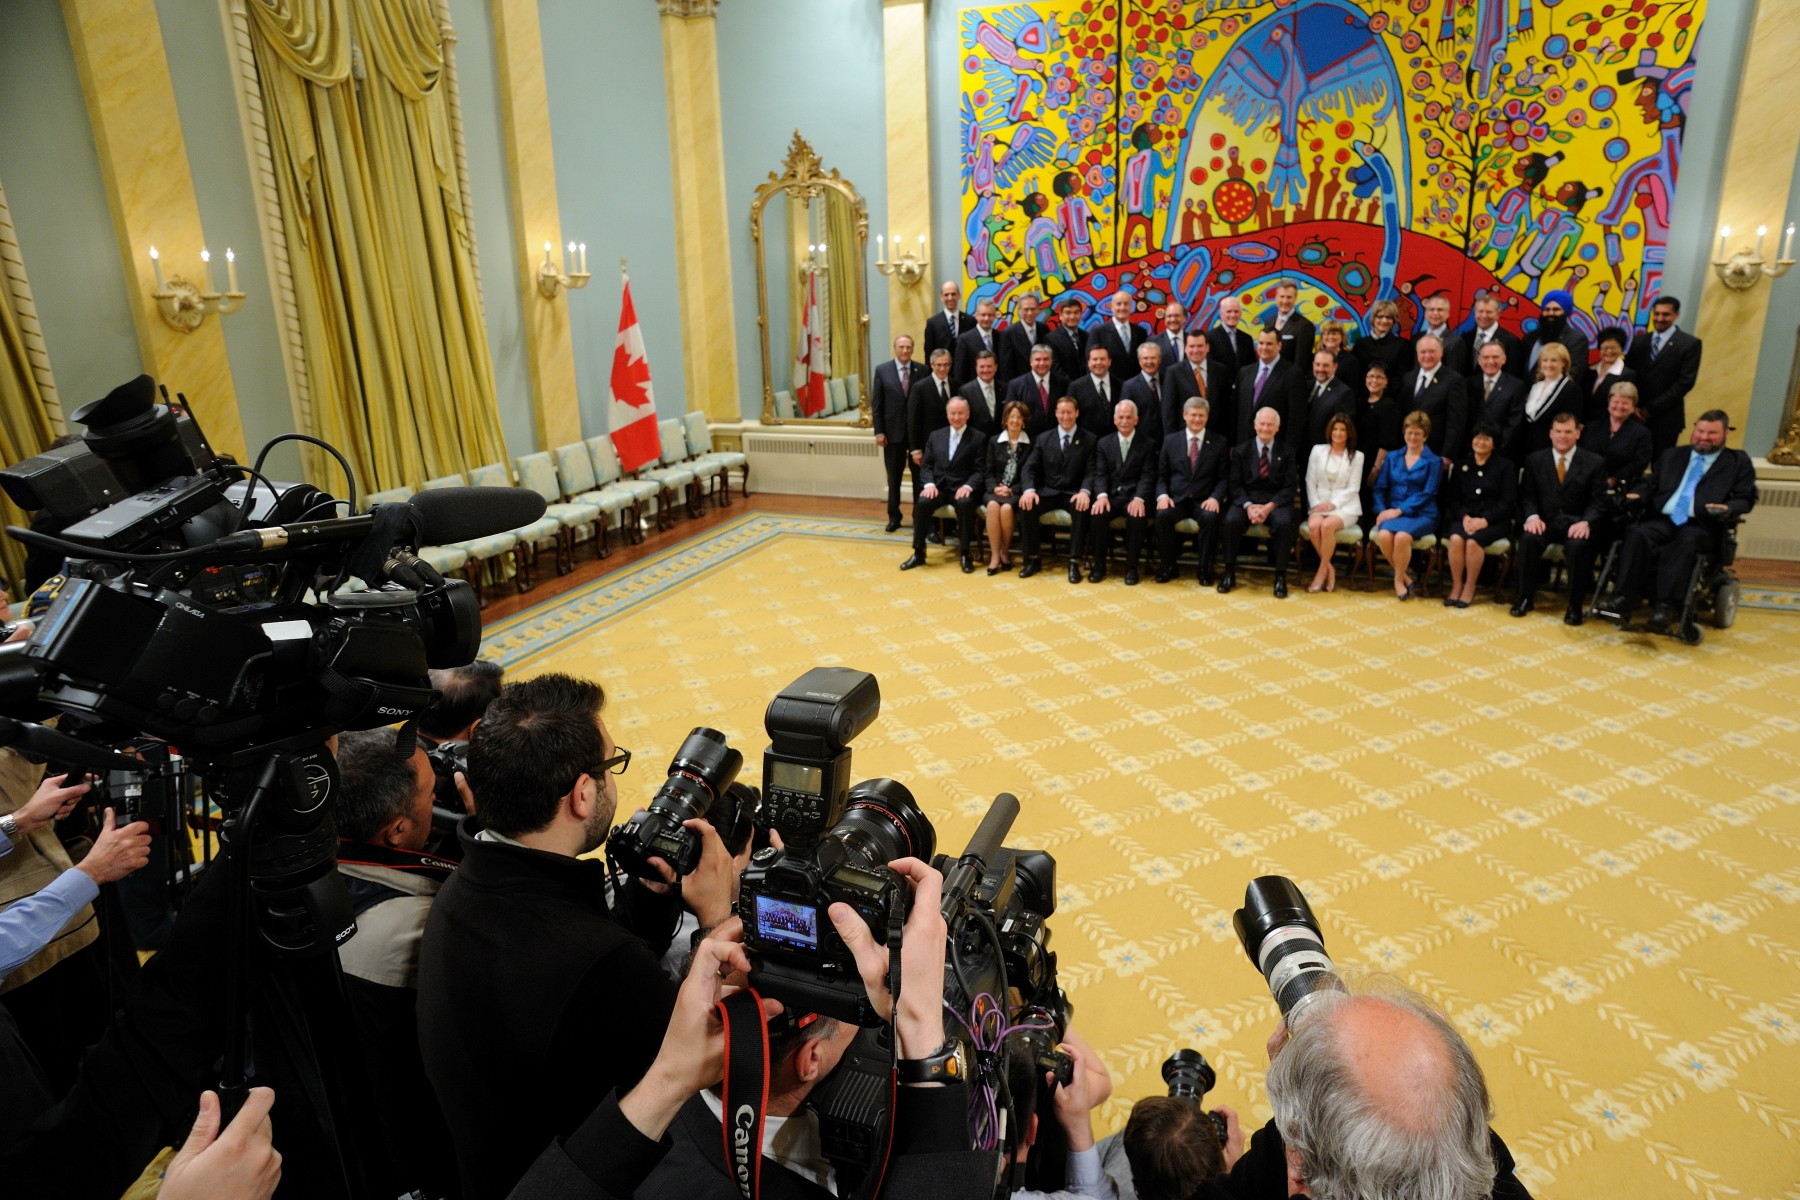 Many media covered the ceremony and the official photo of the new federal Ministry held in the Ballroom.